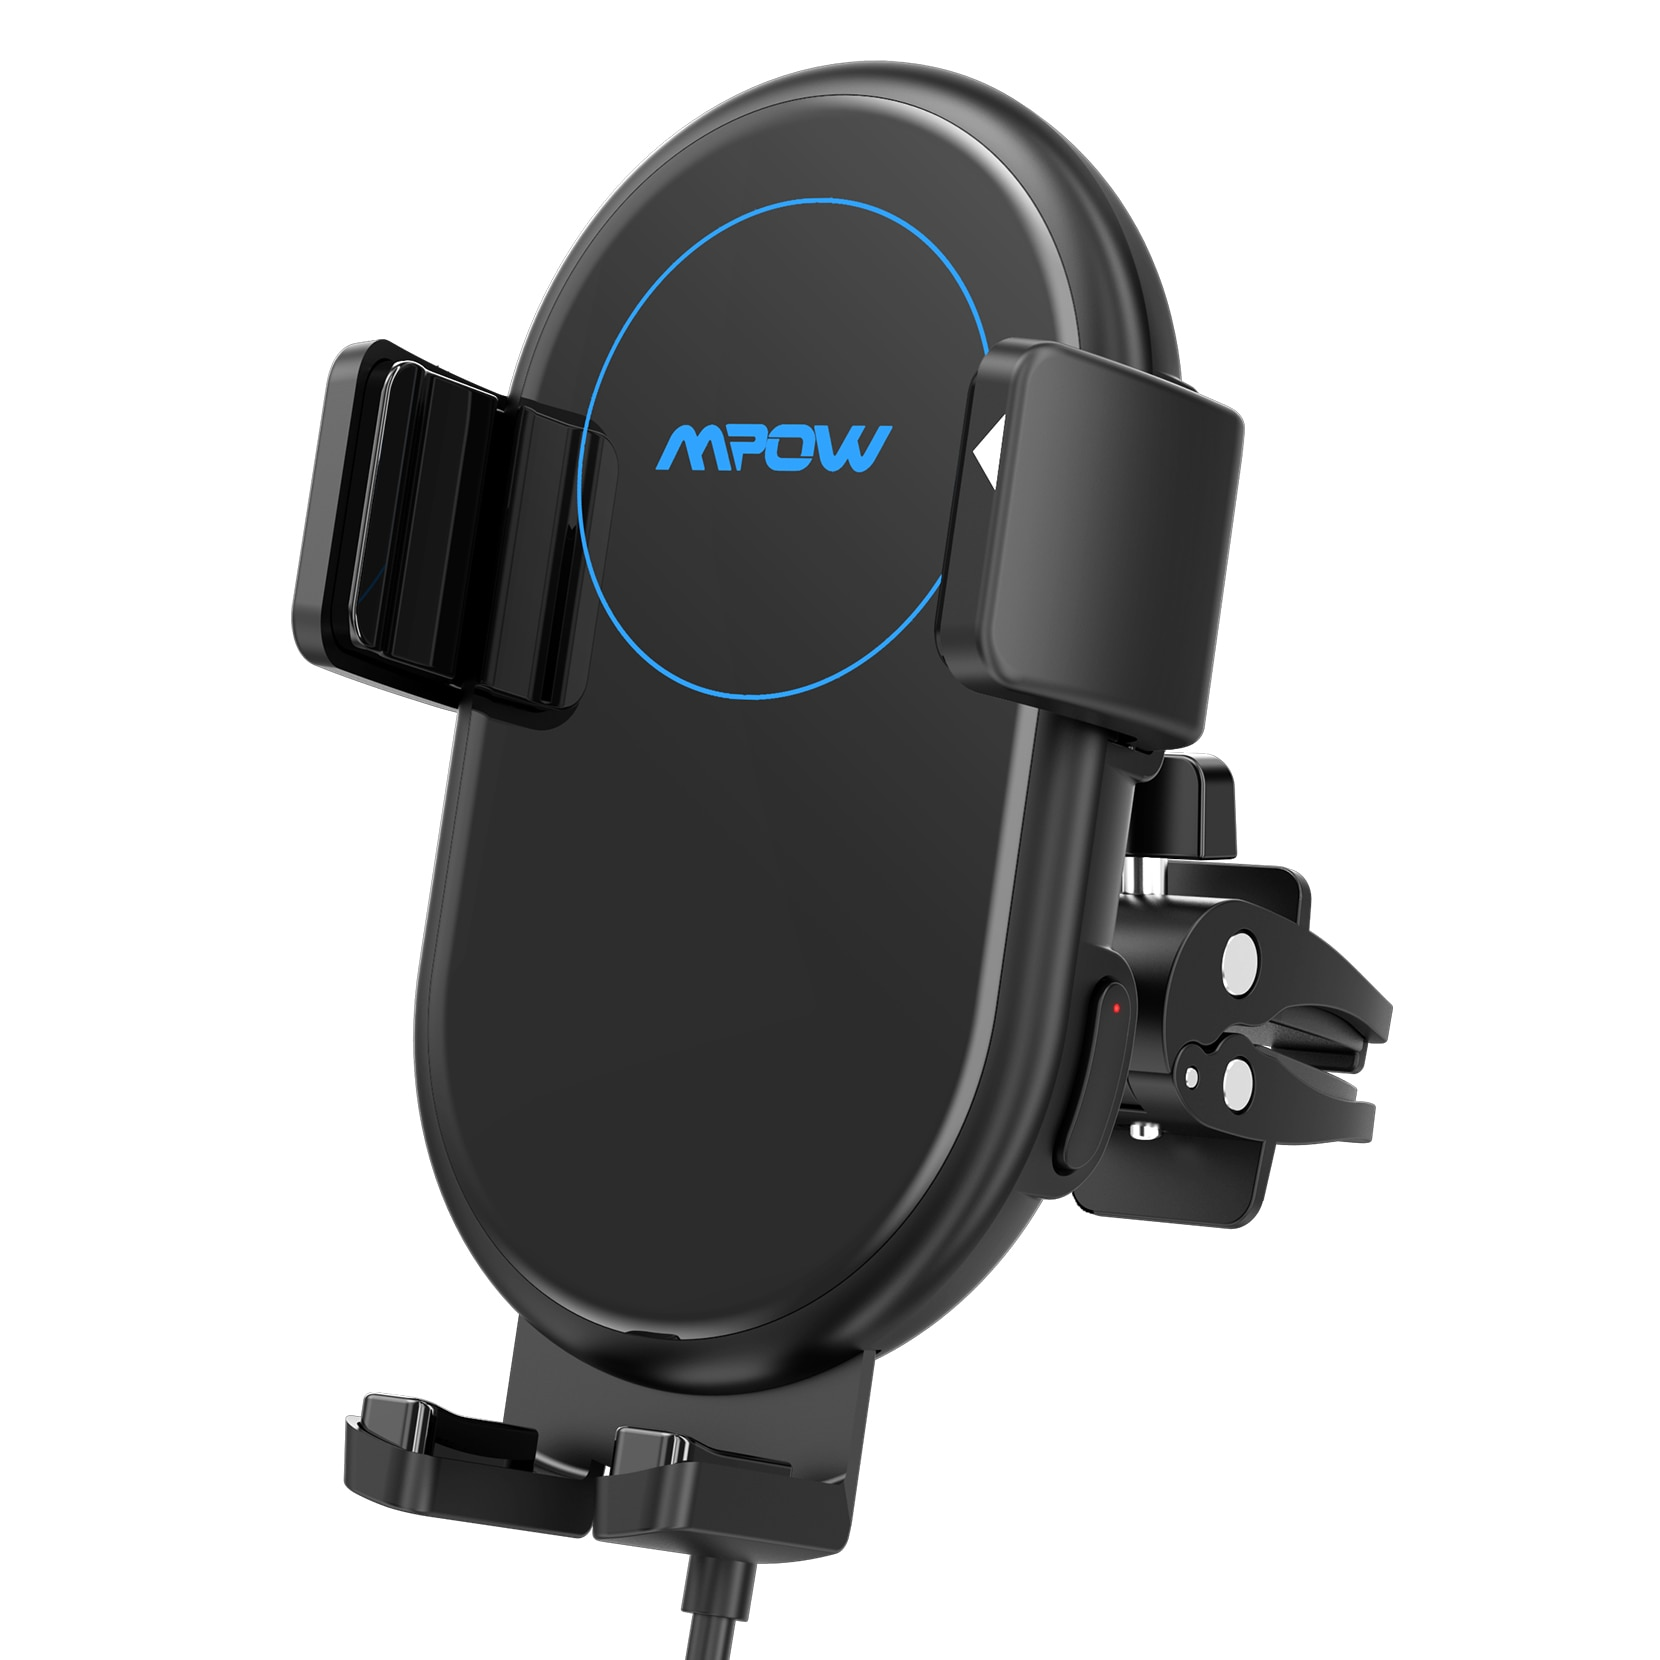 Hfecde1206dd741cd9c78e3dd901bfd25b - Mpow Wireless Car Charger Mount 10W Auto-clamping Qi Fast Charging Car Mount with Power Storage Car Phone Holder for iPhone 12